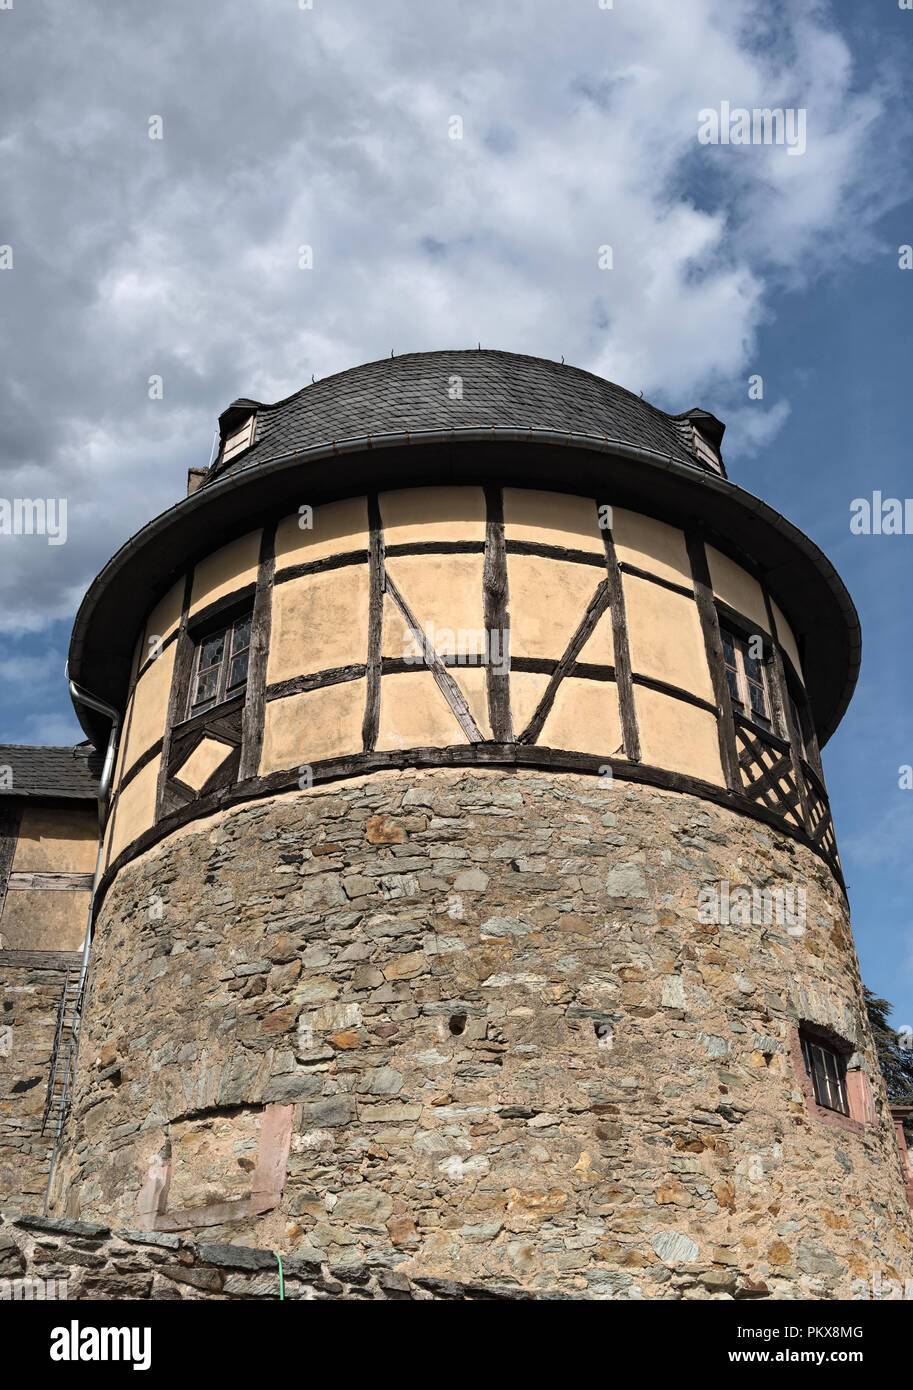 High Middle Ages Rock castle in Kronberg im Taunus, Hesse, Germany. - Stock Image